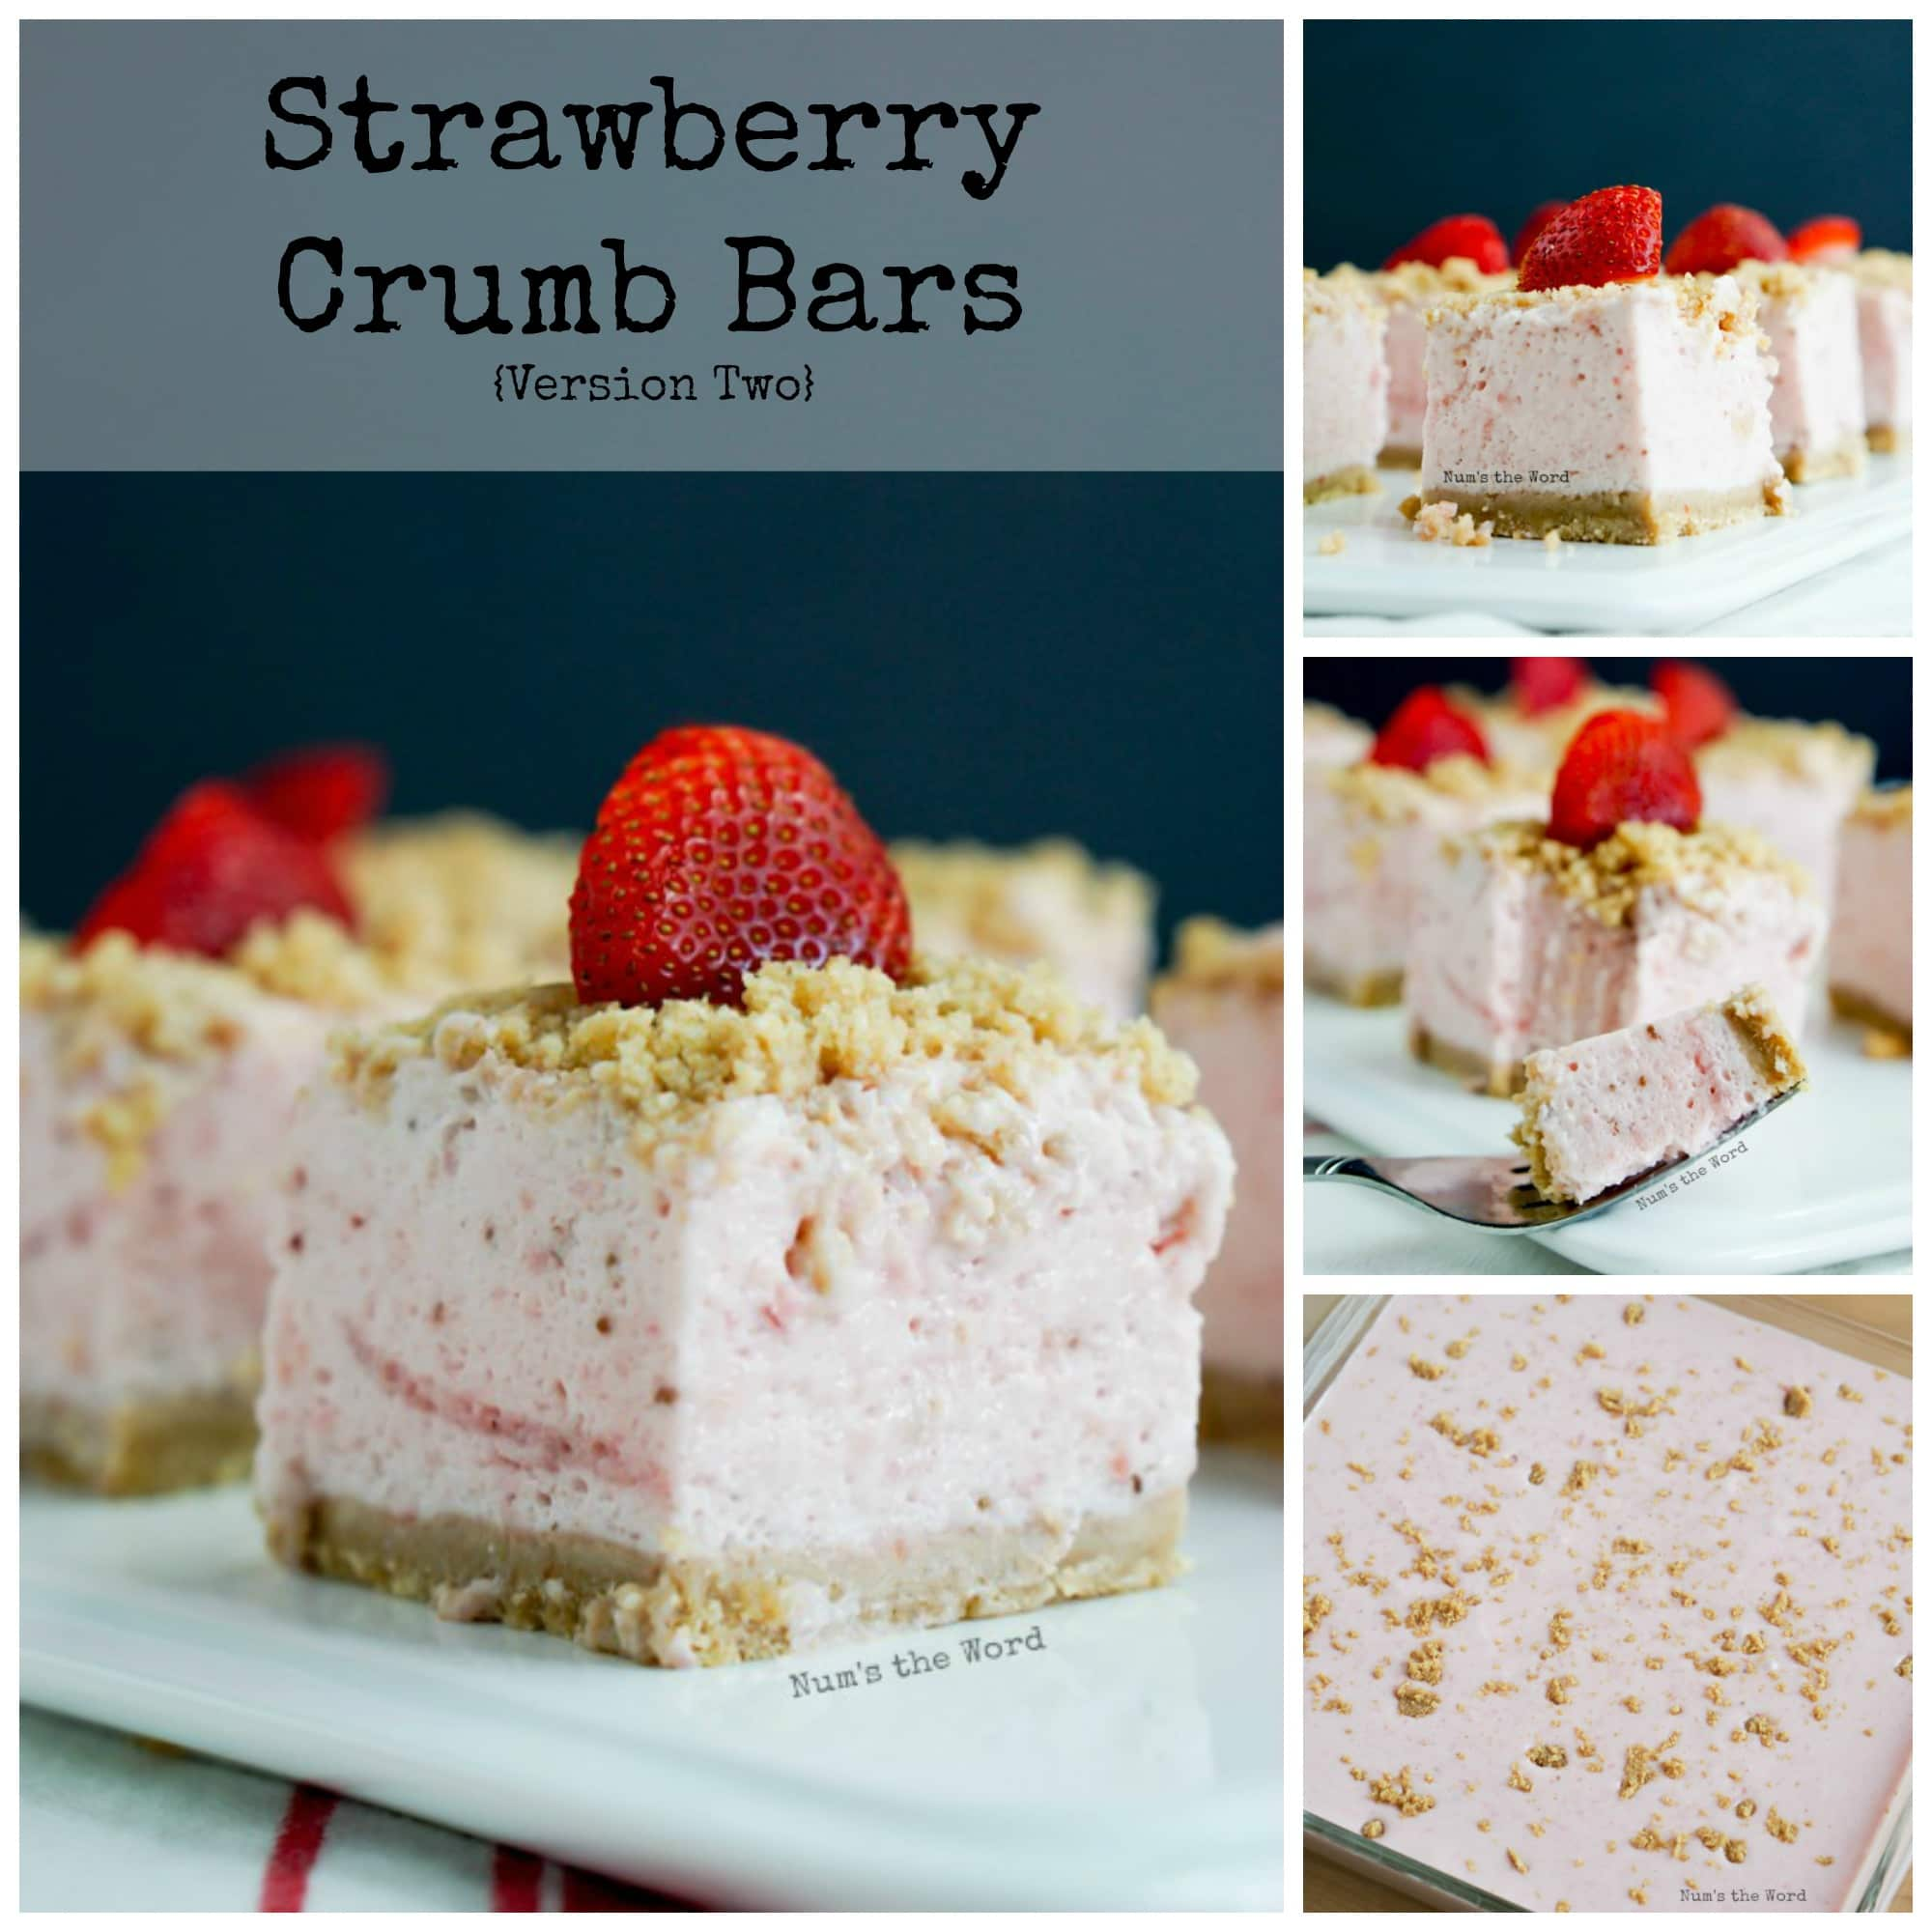 Strawberry Crumb Bars vs. 2 - Collage of images for Facebook